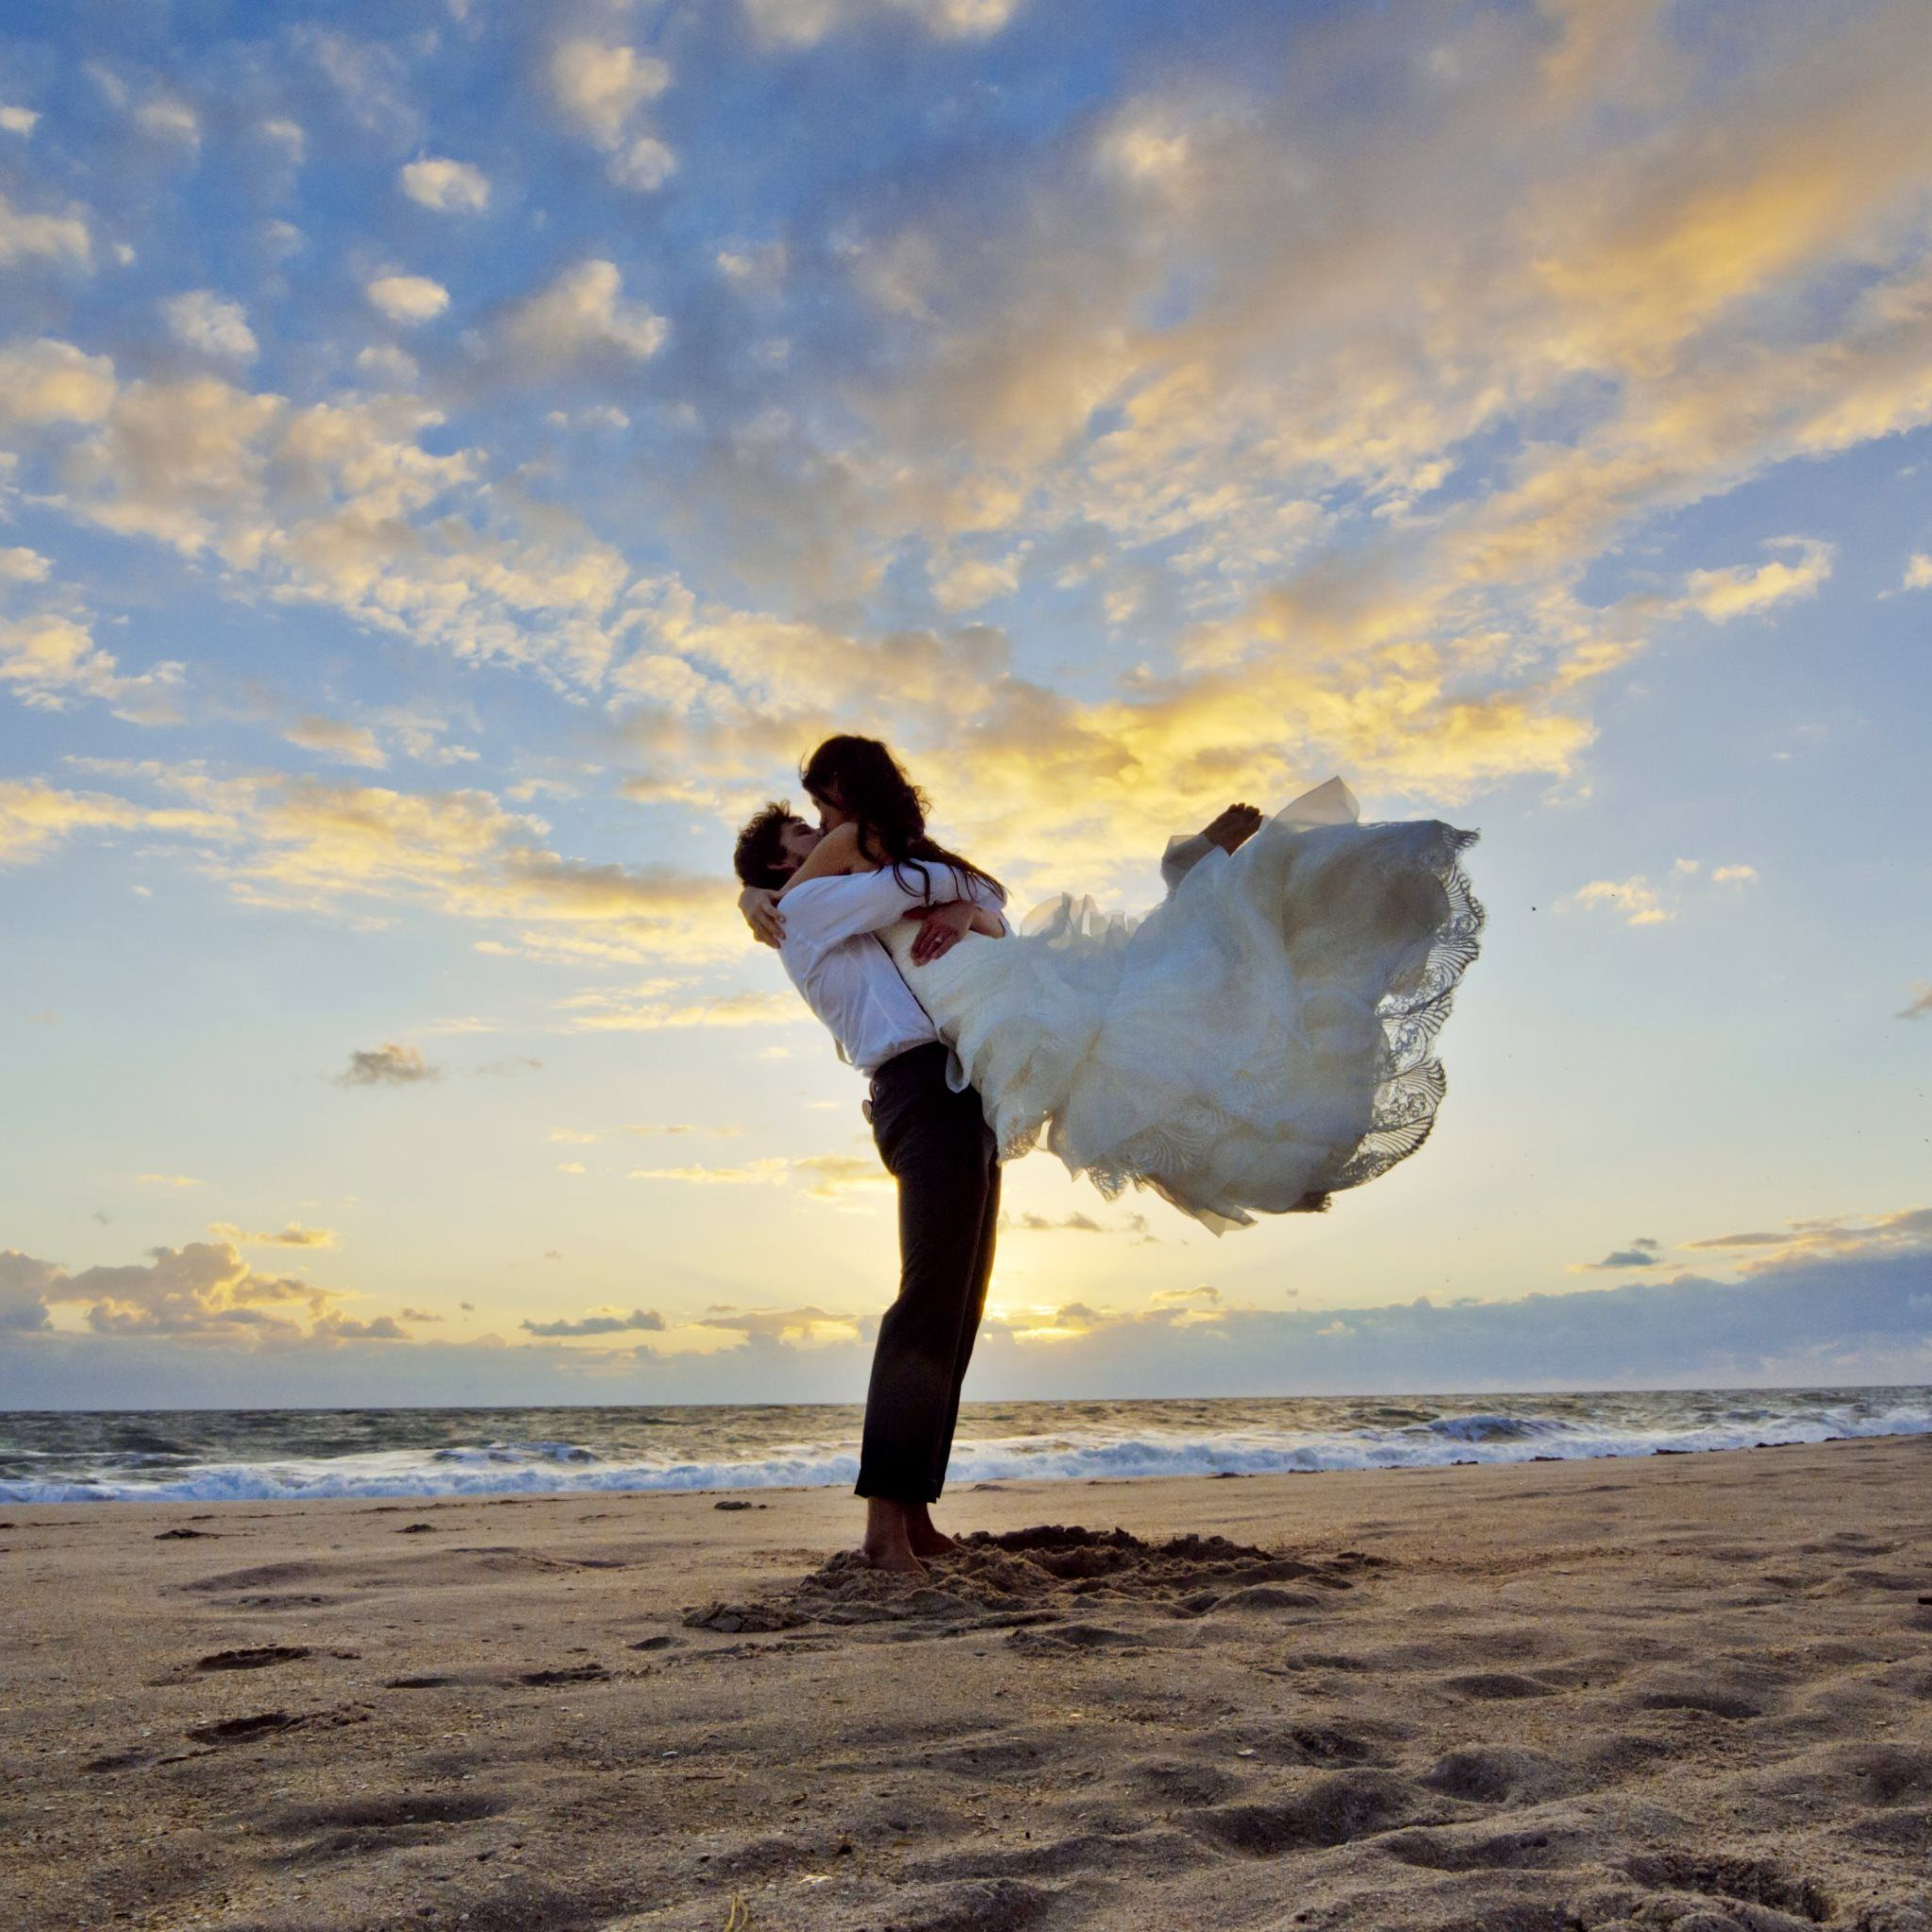 best beach wedding locations on budget%0A Wedding On Beach At Sunset  Tap to see more beautiful wedding shots of  couples in  Weddings On A BudgetDestination